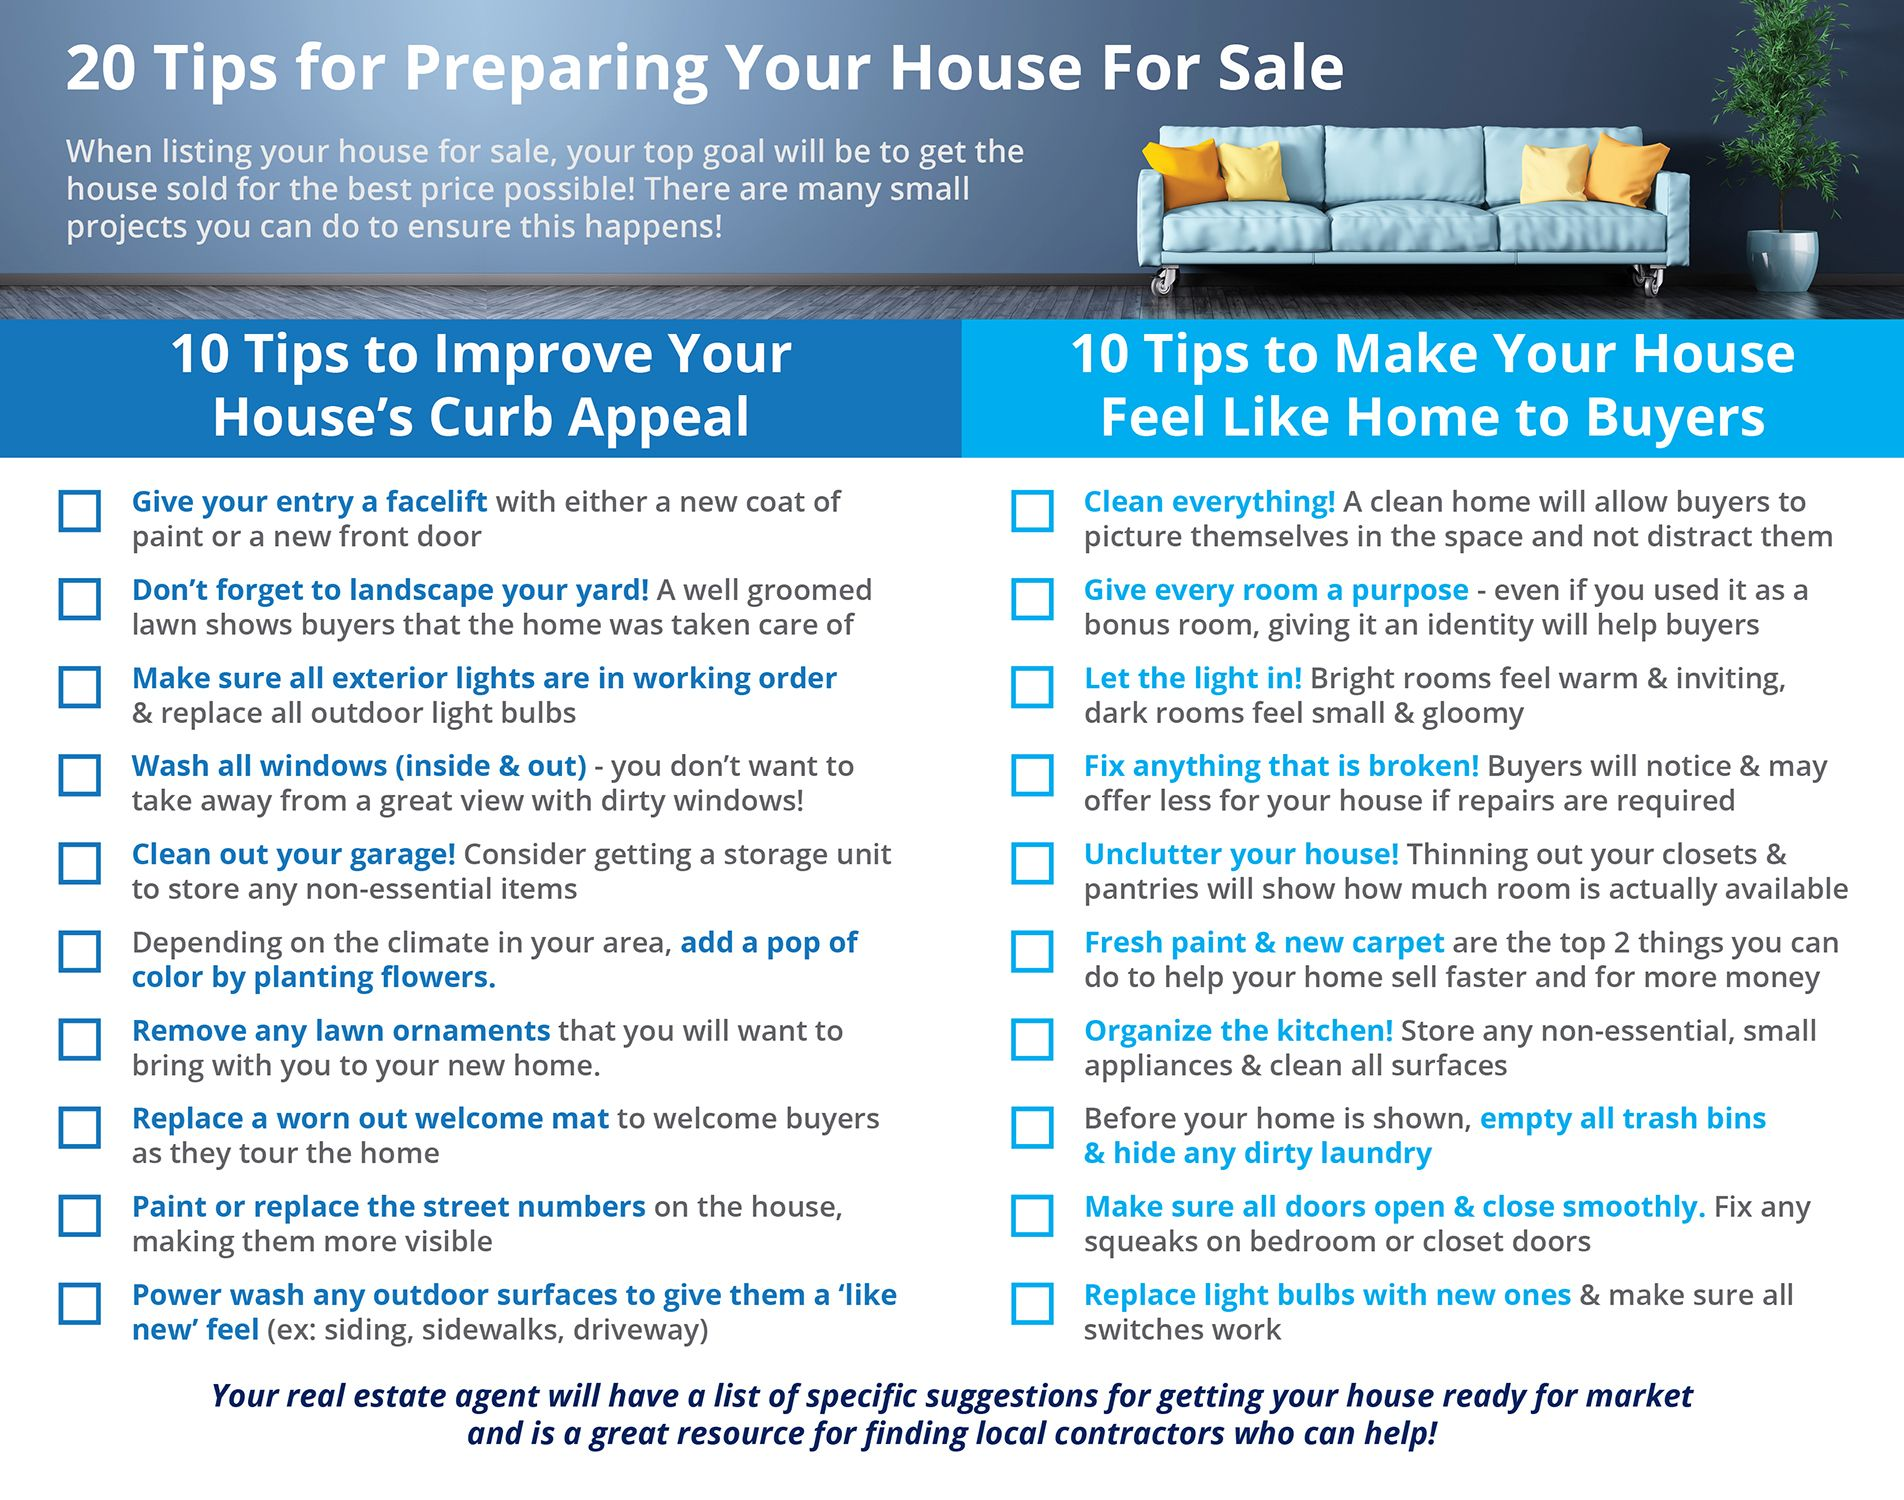 20 Tips For Preparing Your House For Sale This Spring Infographic With Images Home Selling Tips Real Estate Tips Selling House